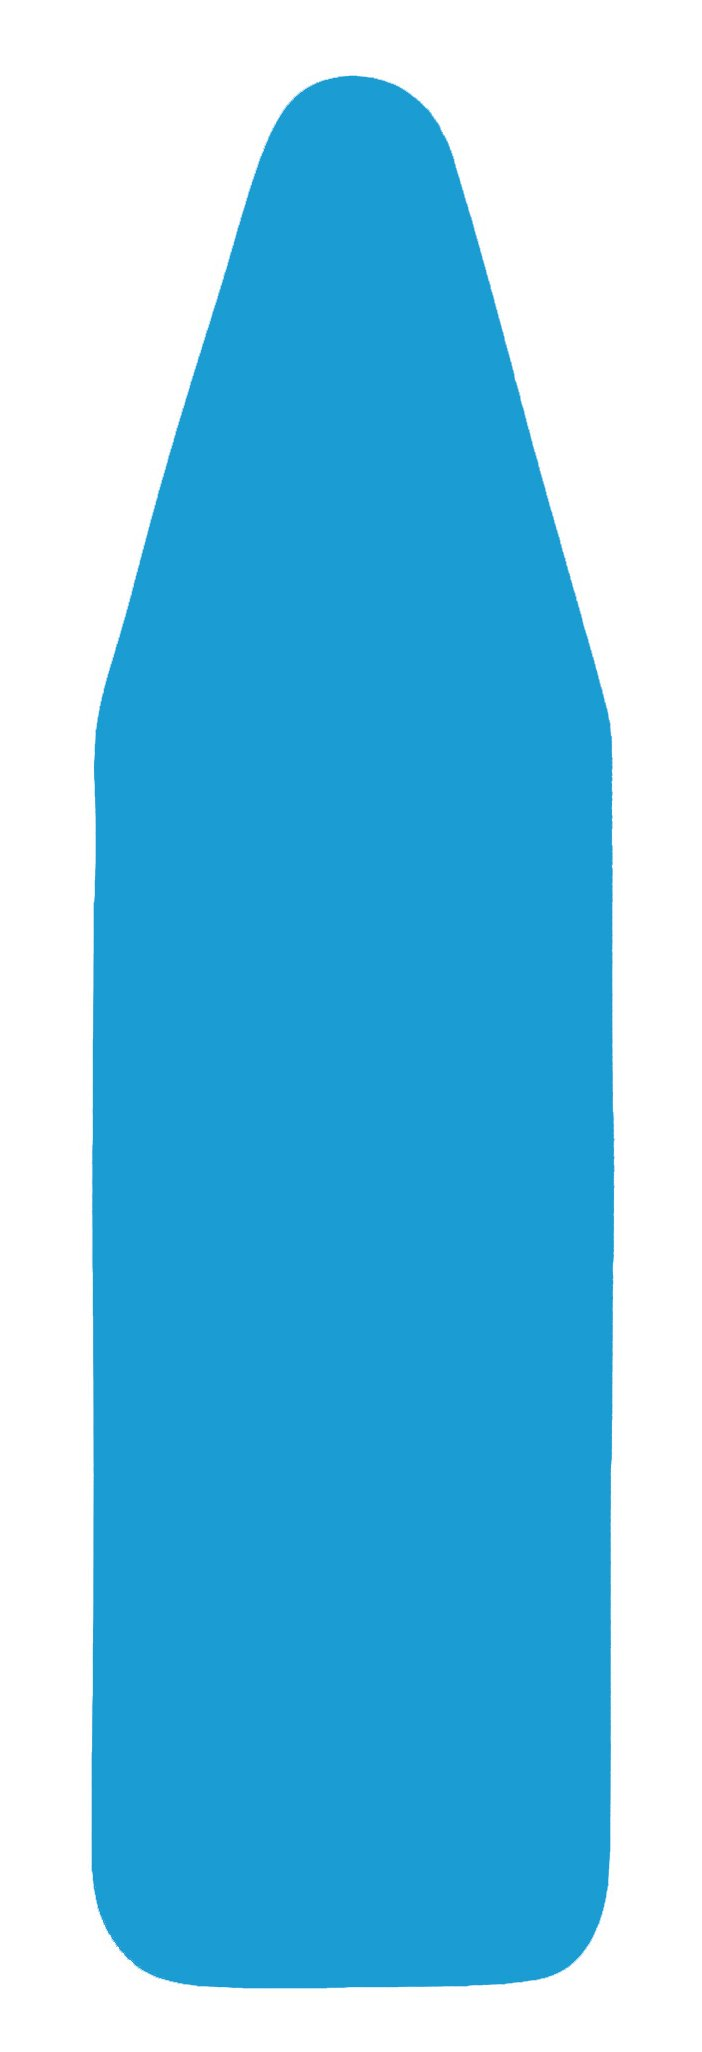 "de Machinor 19"" x 54"" - 3 Layer Padded - Ironing Board Cover - TITANIUM SILICONE Coated Textile - Color Royal Blue"